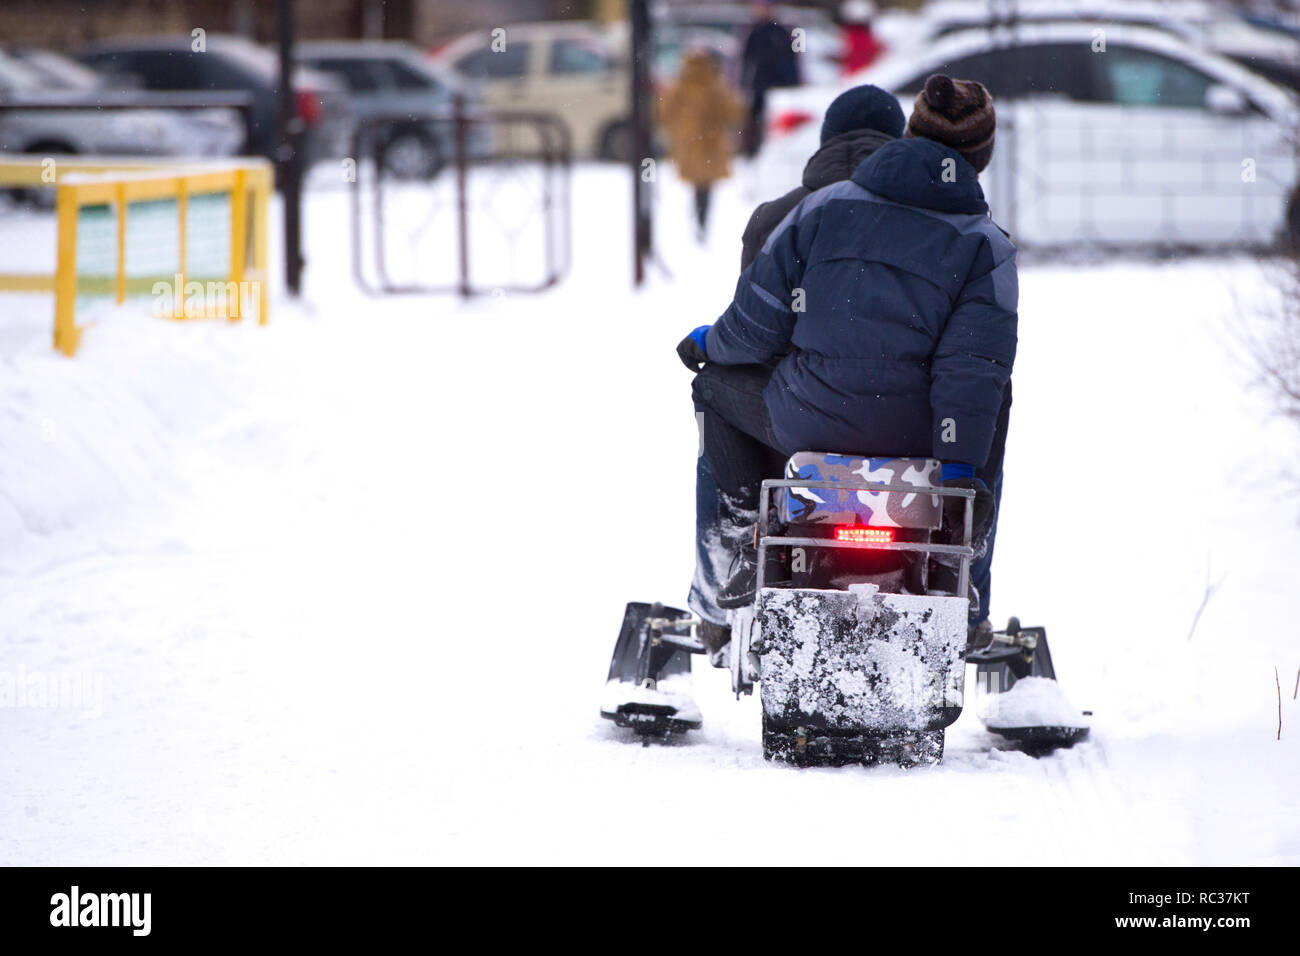 People riding a snowmobile action - Stock Image